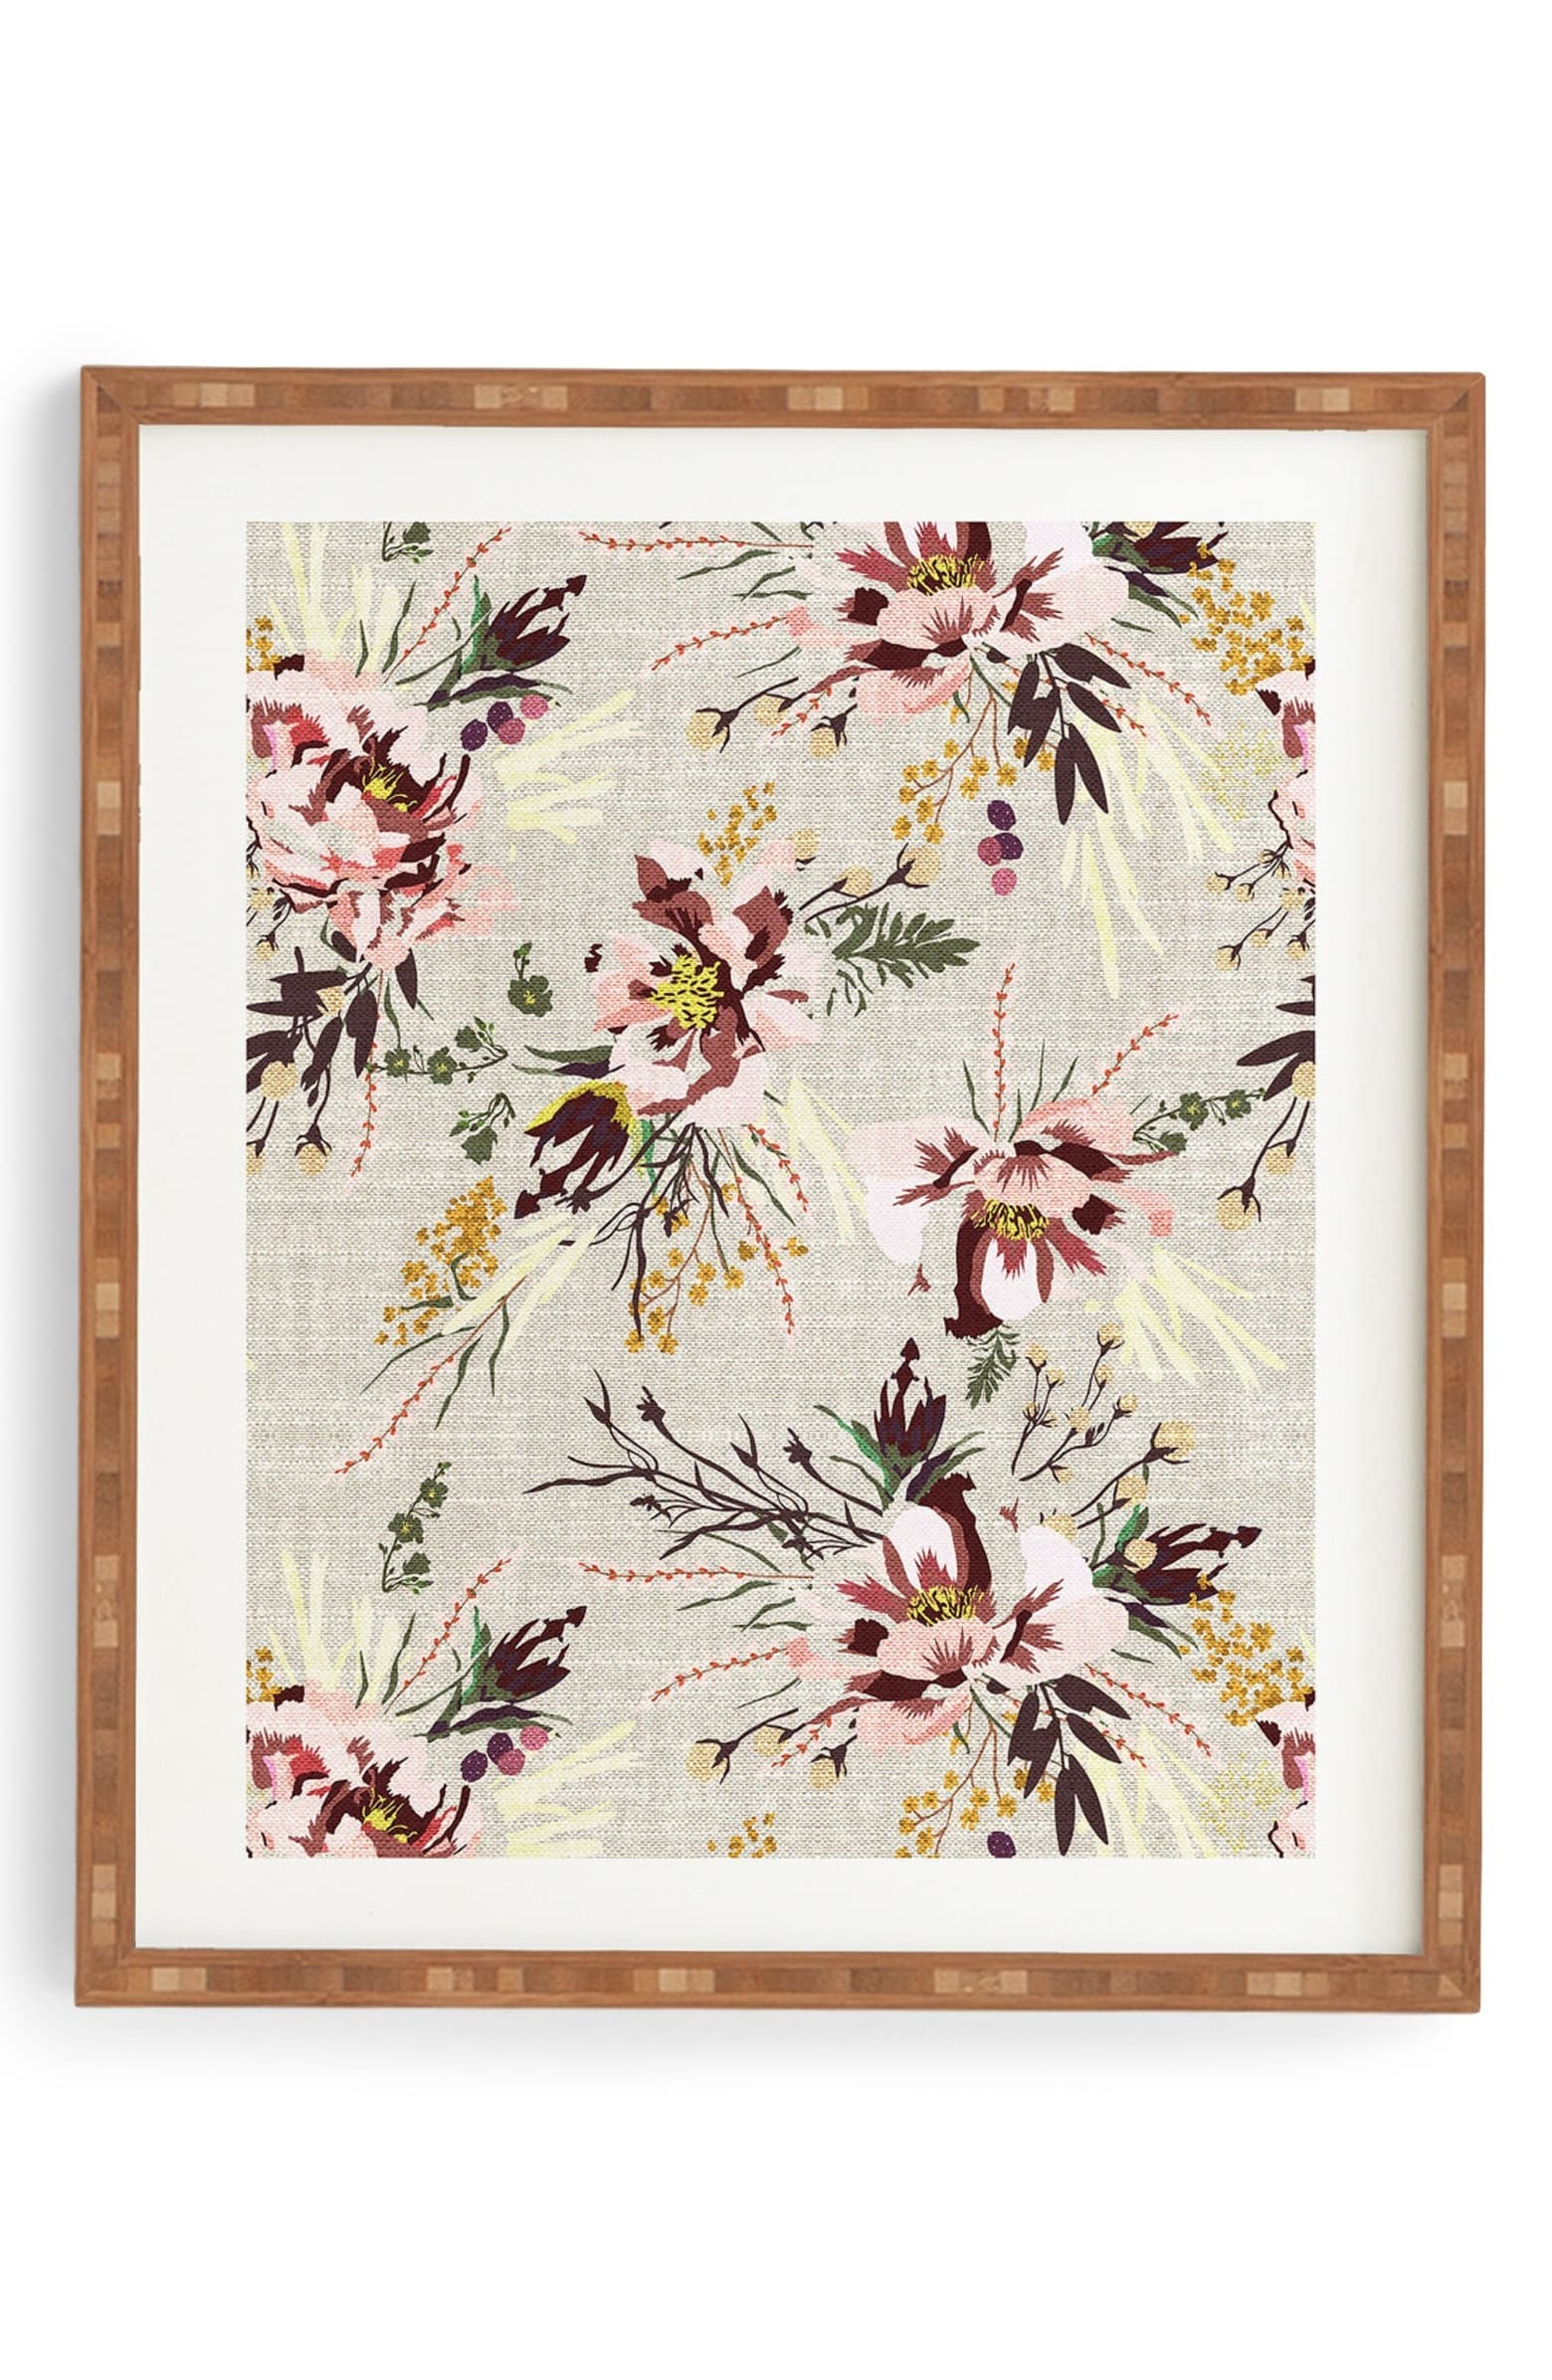 the floral art in a brown frame